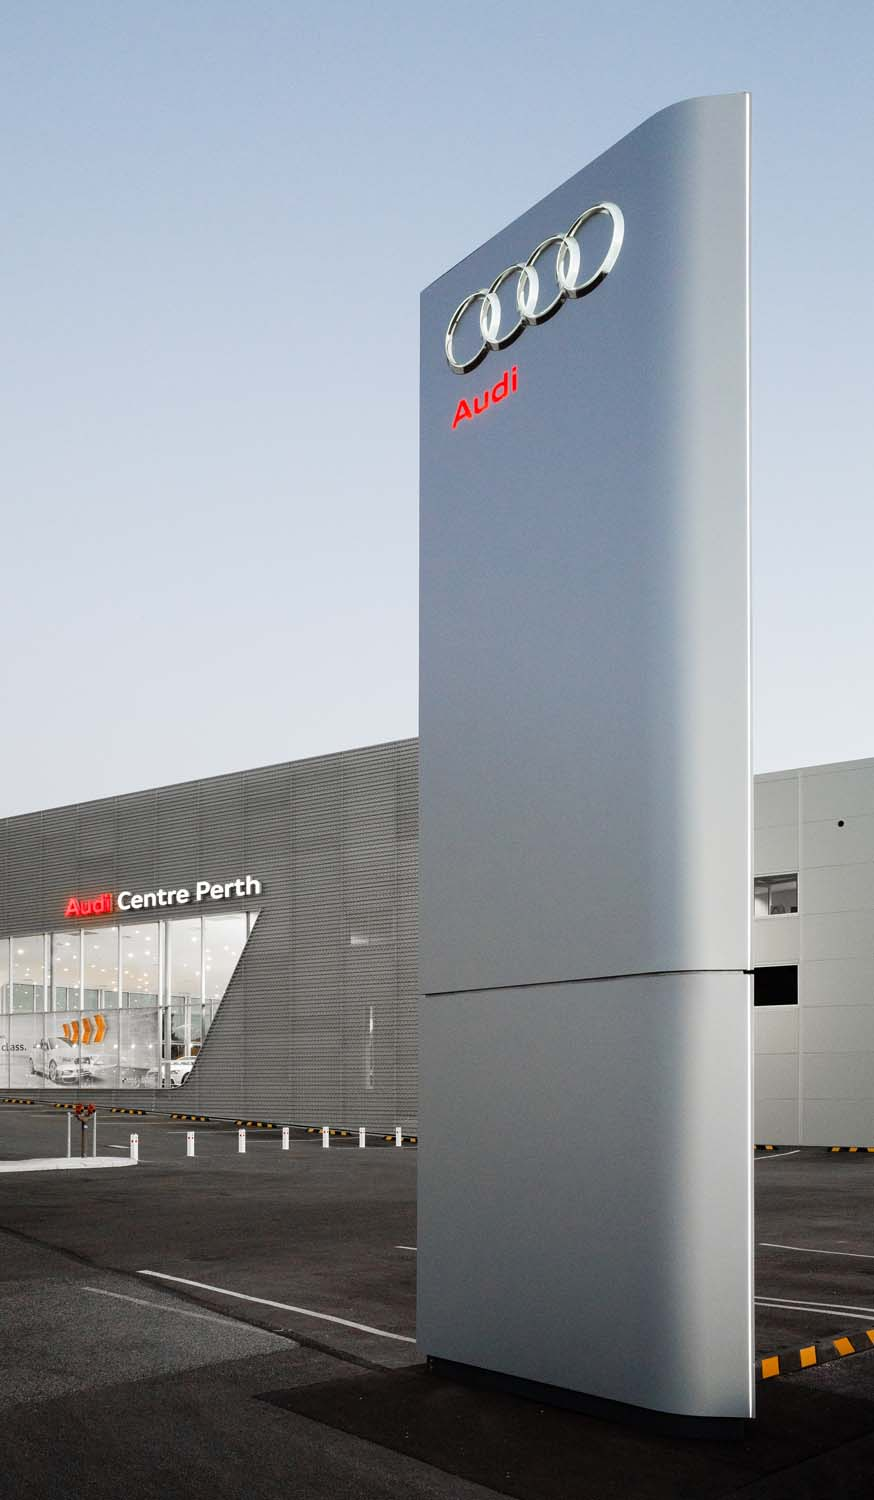 Audi_Centre_Perth_09_HR.jpg